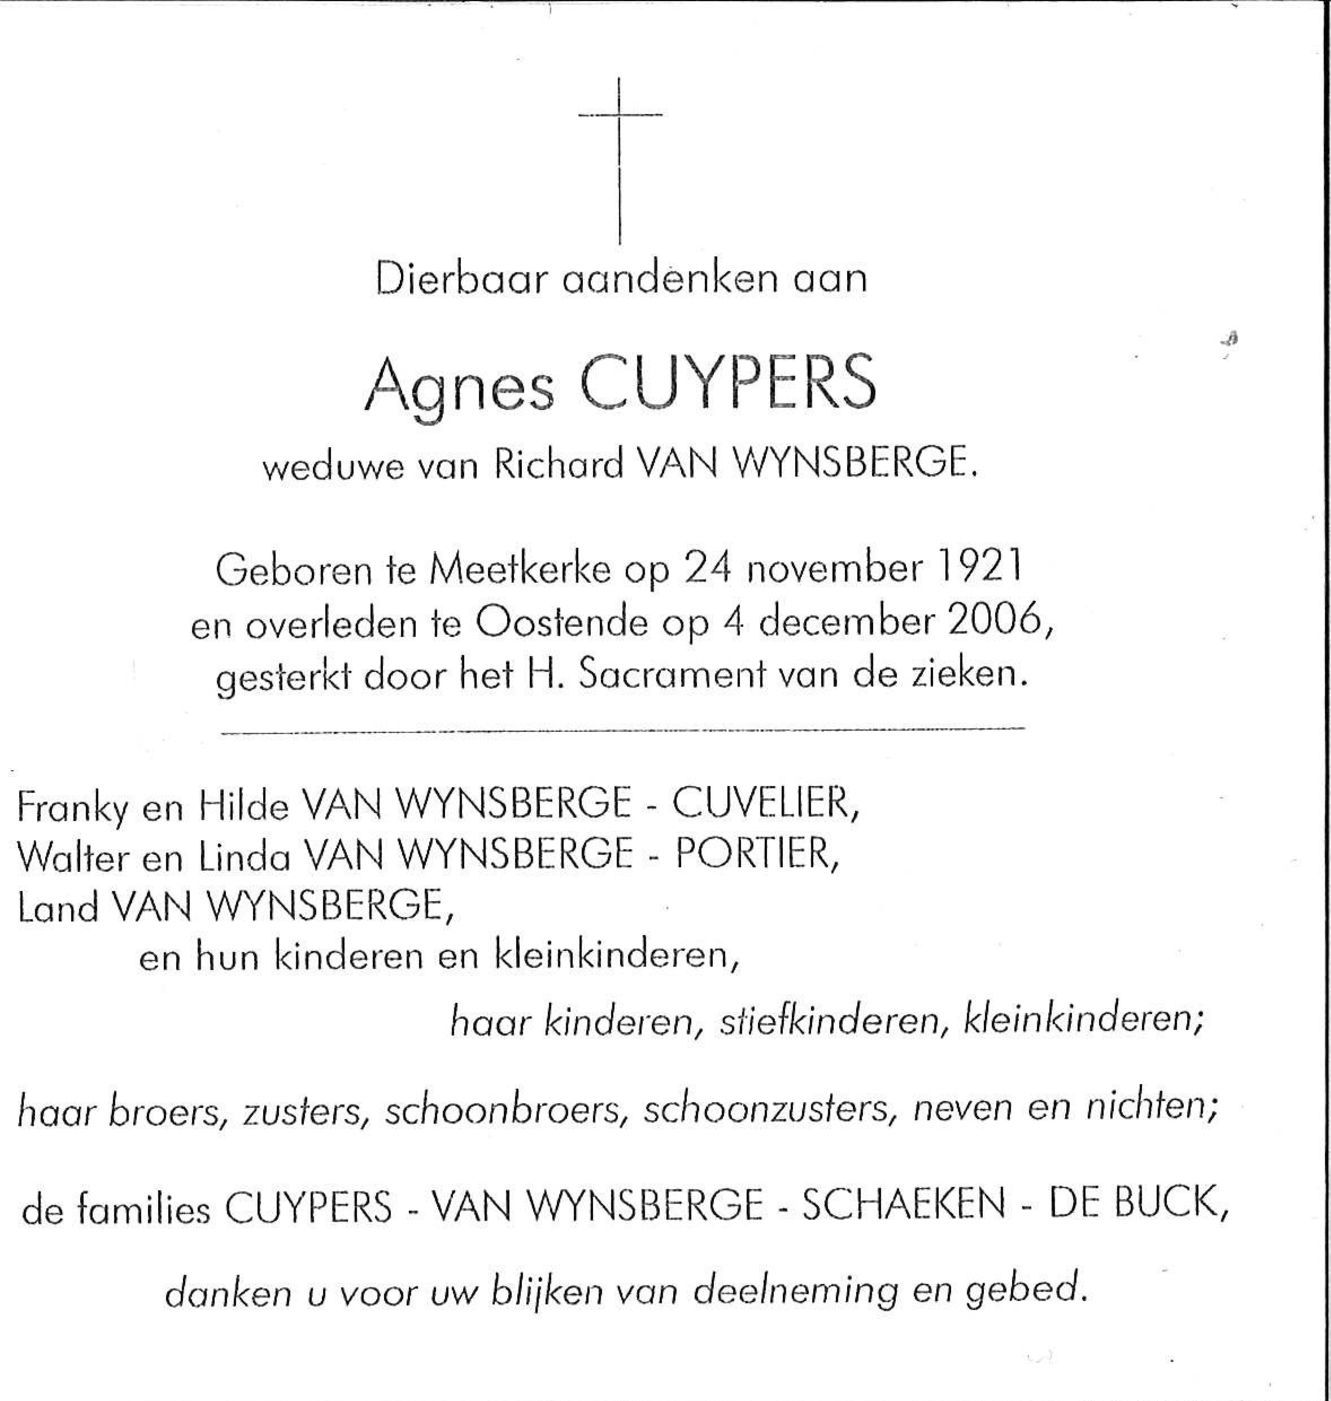 Agnes Cuypers